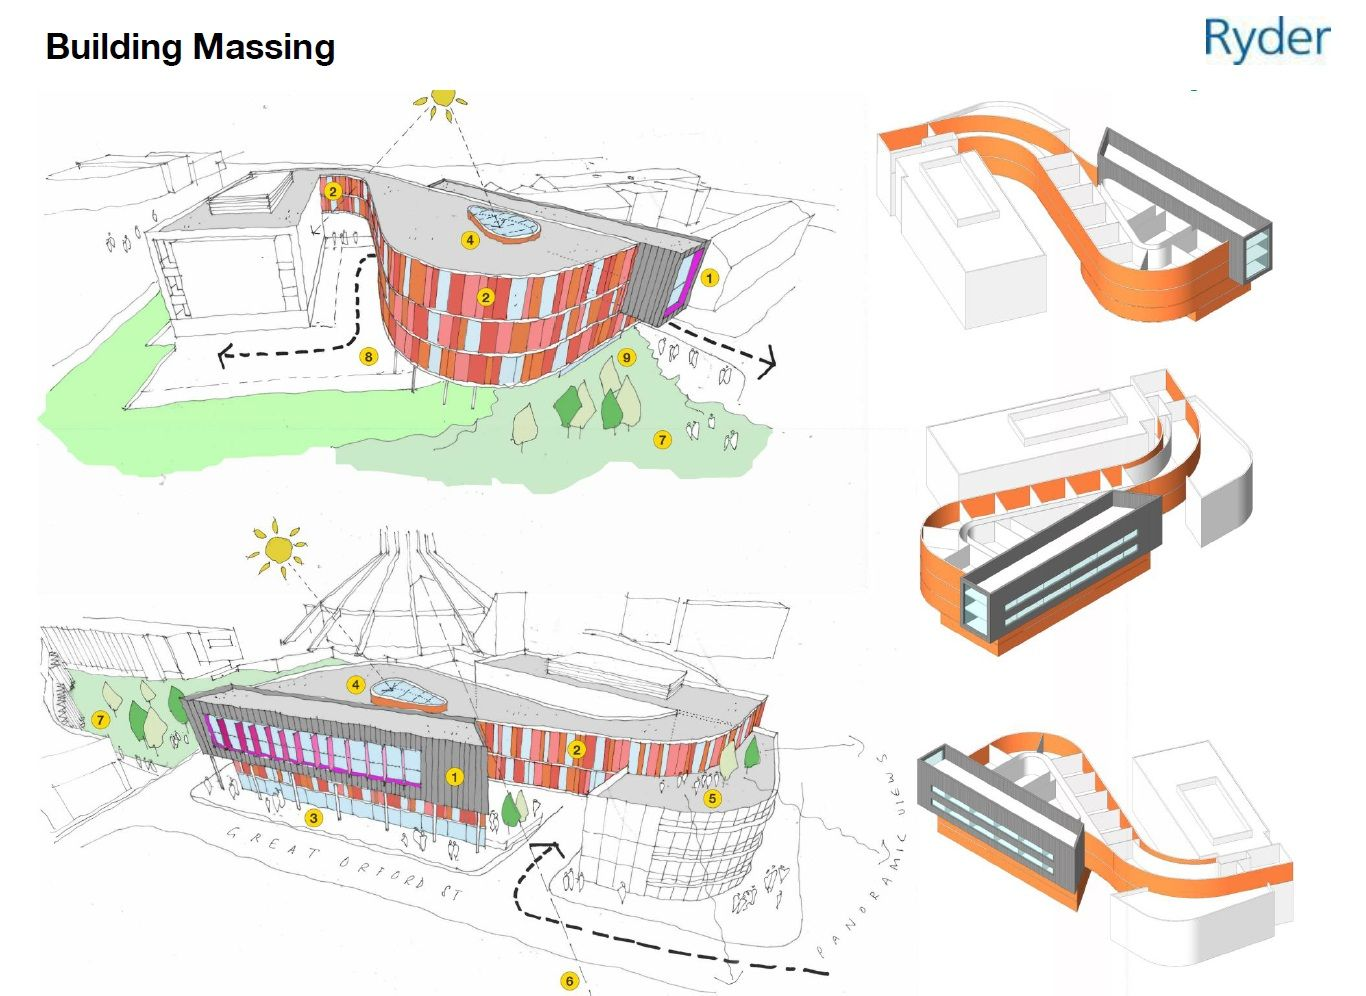 Revit Massing Model  Conceptualarchitecturalmodels Pinned